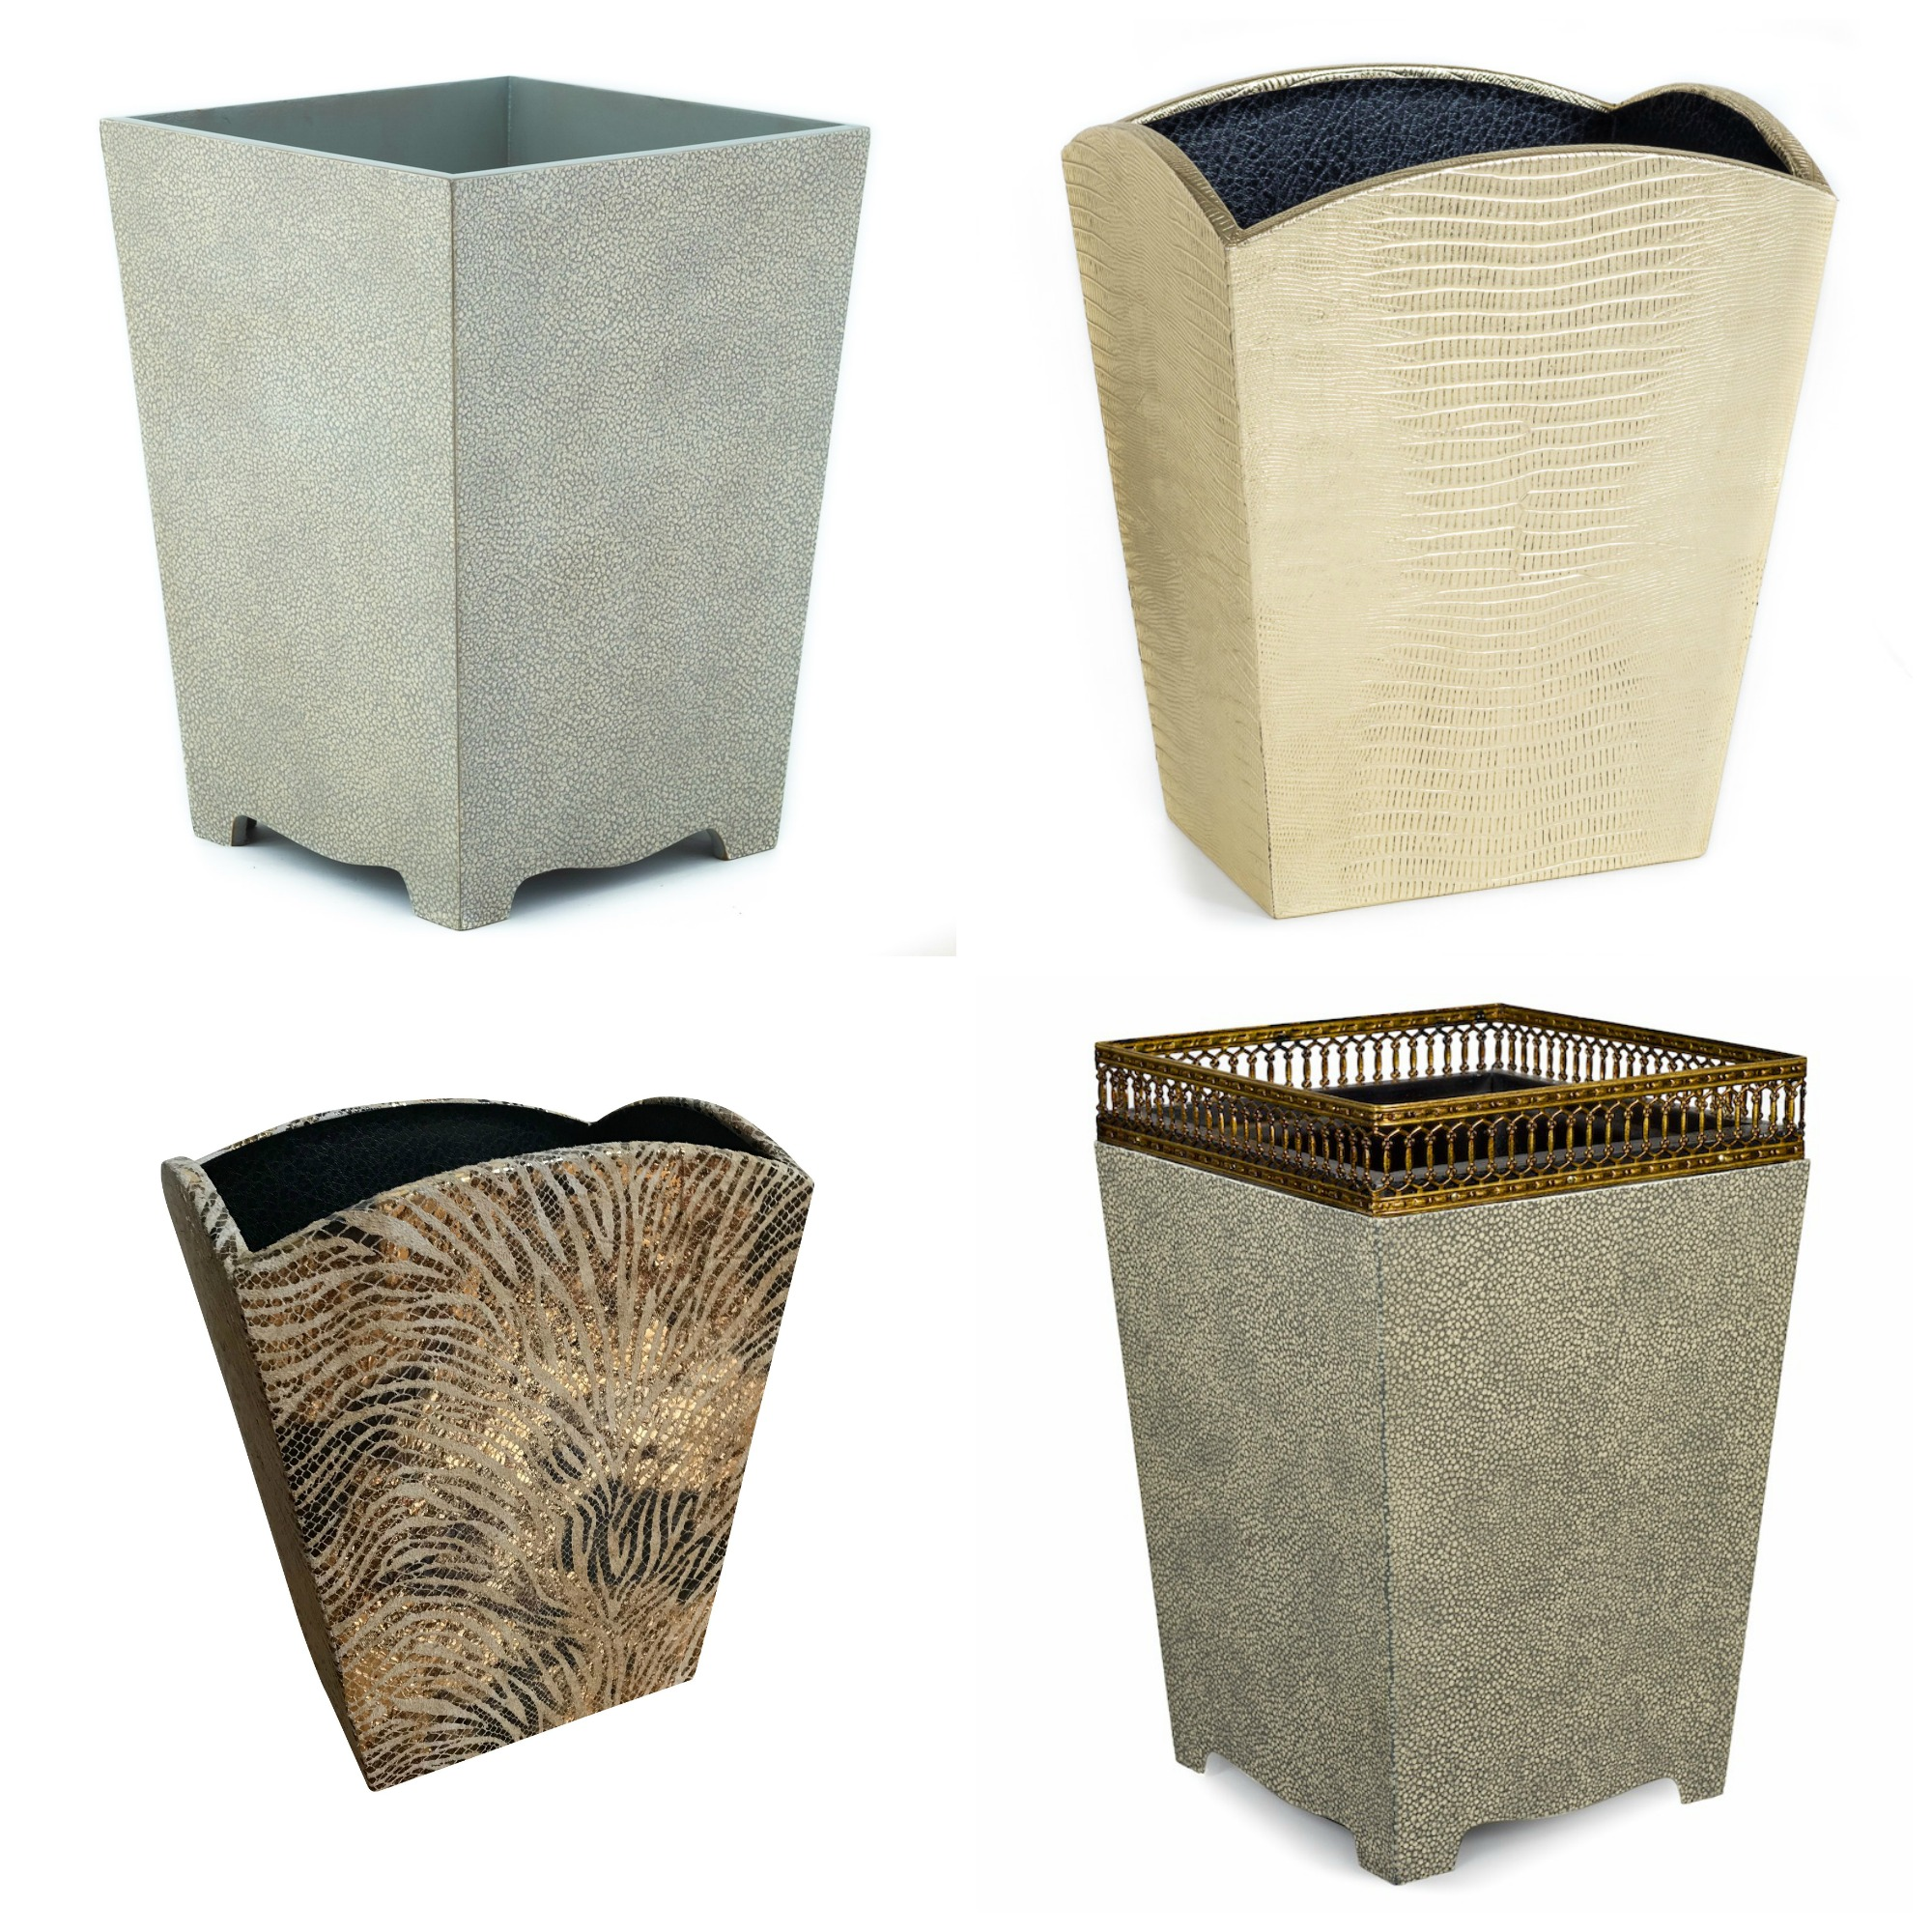 Shagreen Embossed Croc Leather Texture Waste Paper Bin